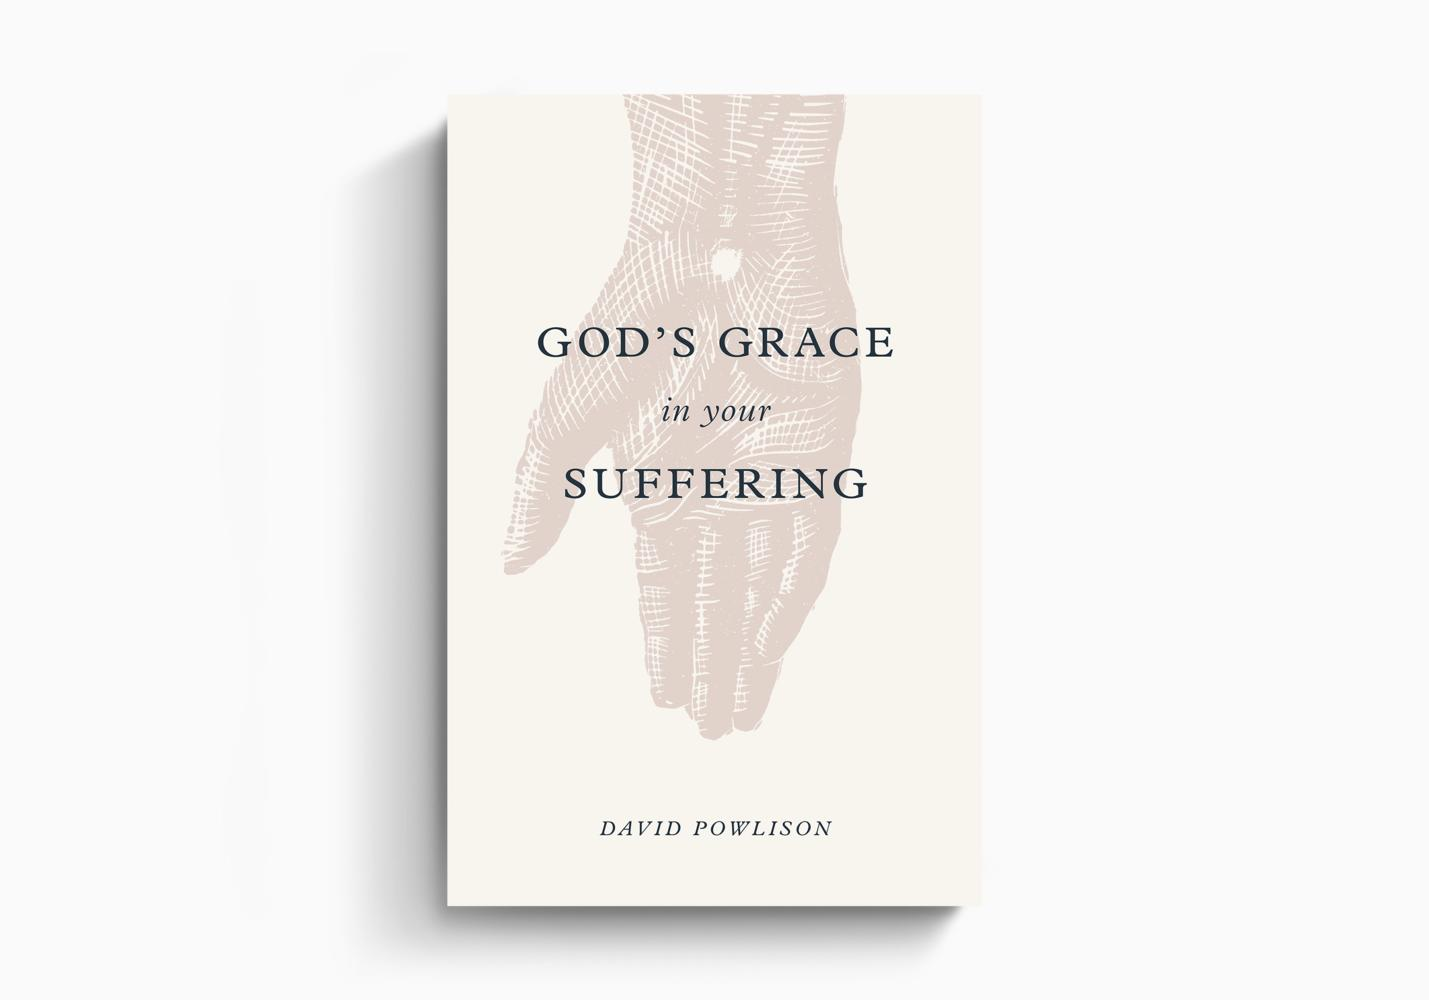 God's Grace in Your Suffering